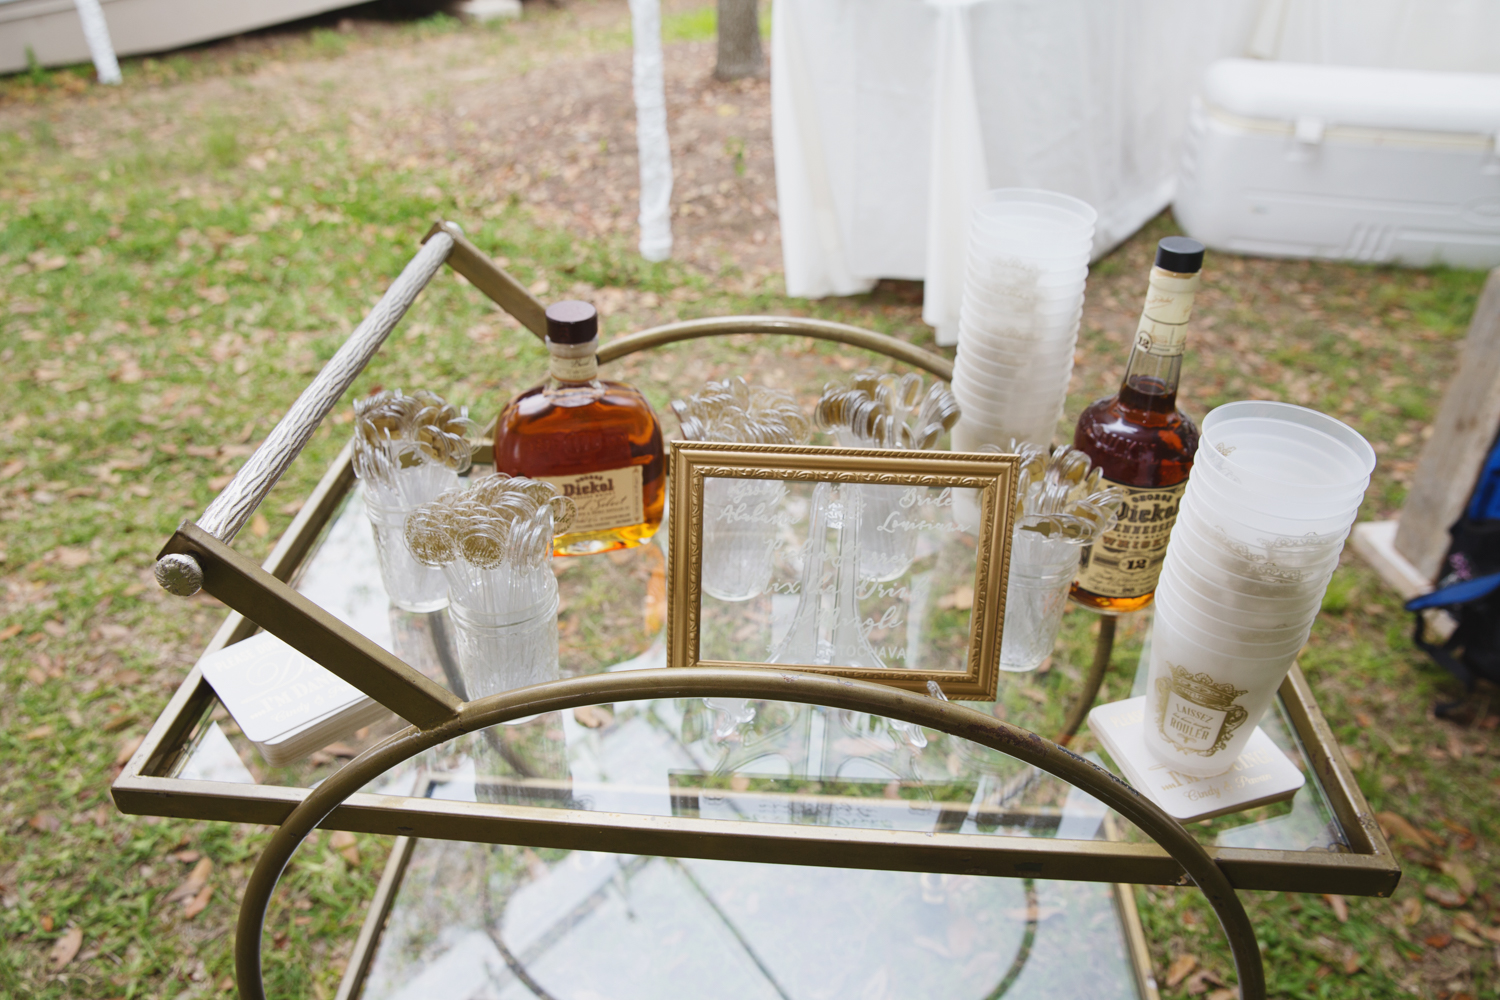 Southern Fete, Southern Wedding, Debbie Does Doberge, Firefly Ambiance